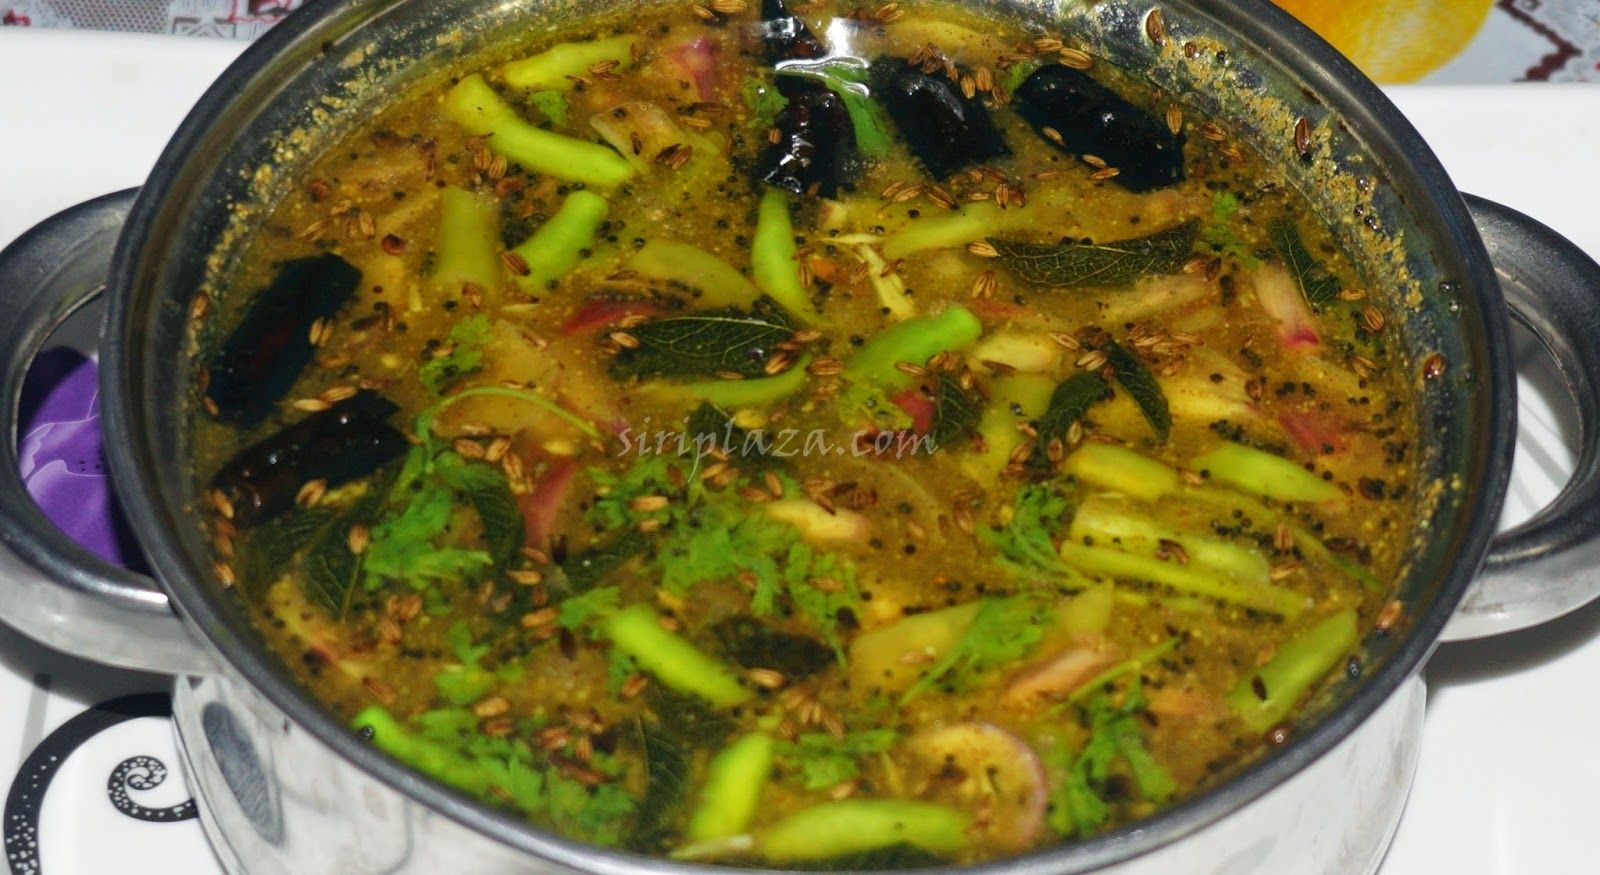 Pachi pulusu telangana special siriplaza andhra recipes pachi pulusu telangana special siriplaza andhra recipes telugu vantalu indian food recipes forumfinder Image collections